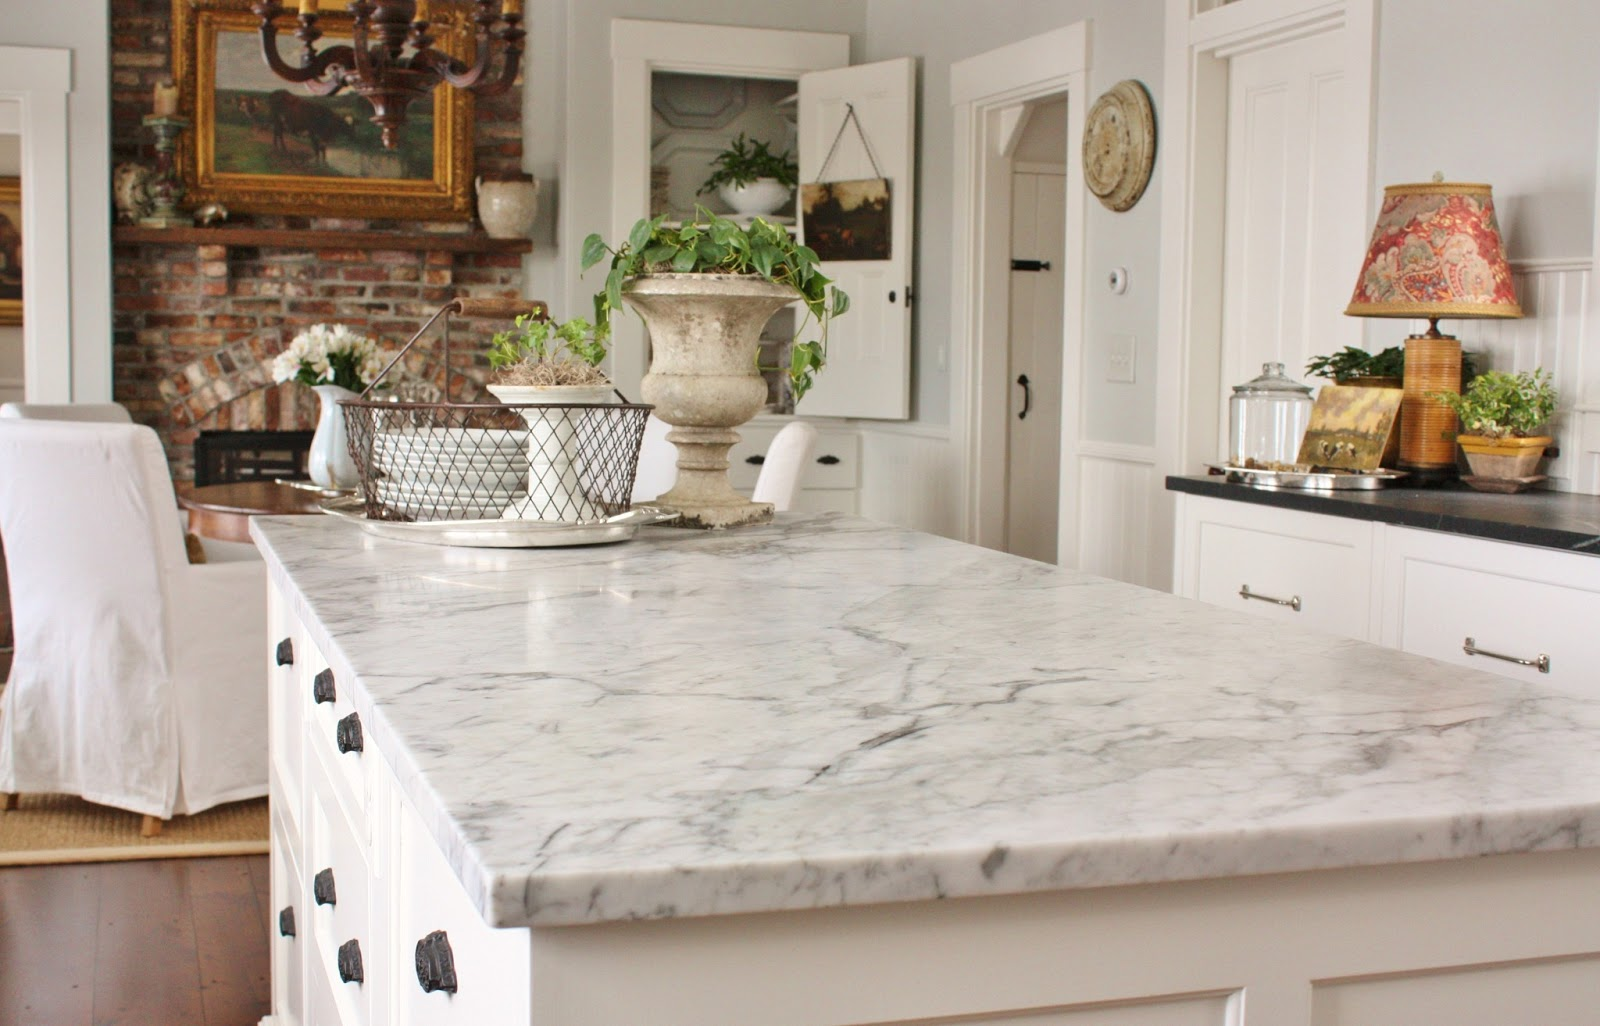 Kitchen Counter Marble design dilemma marble countertops or not For The Love Of A House Marble